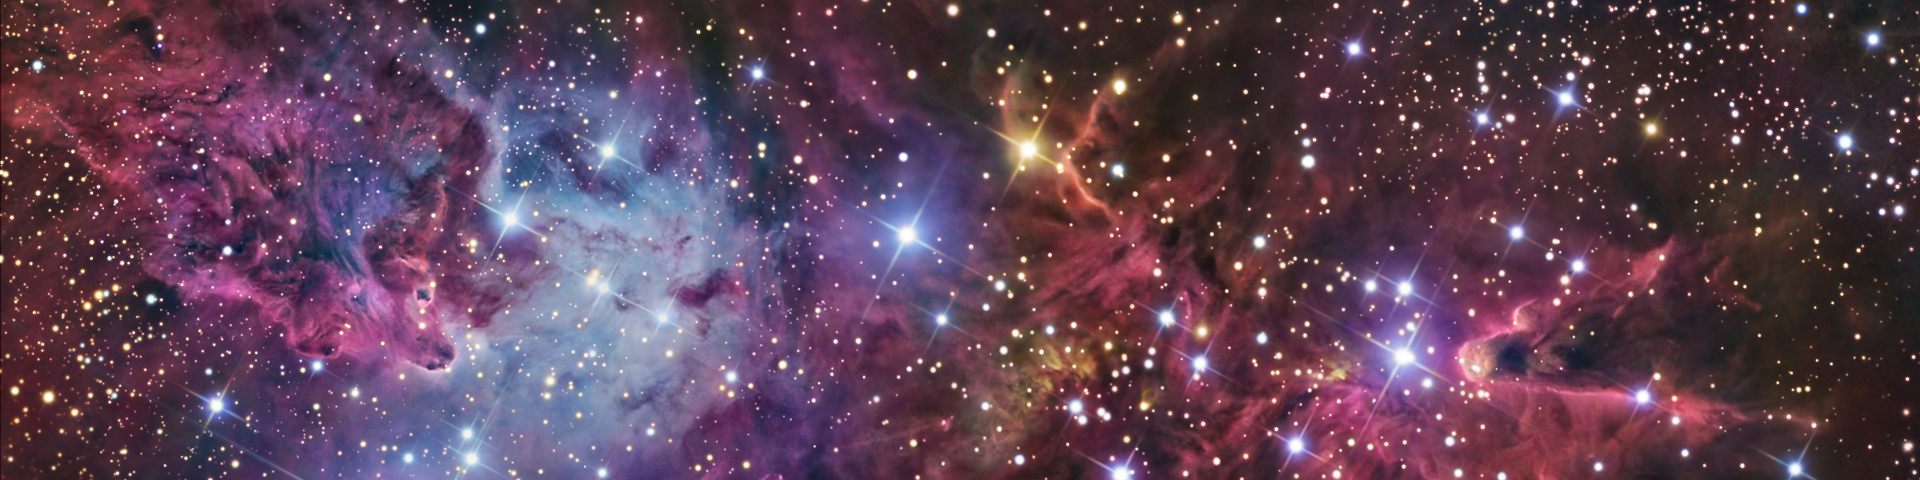 Nebulae and star clusters.